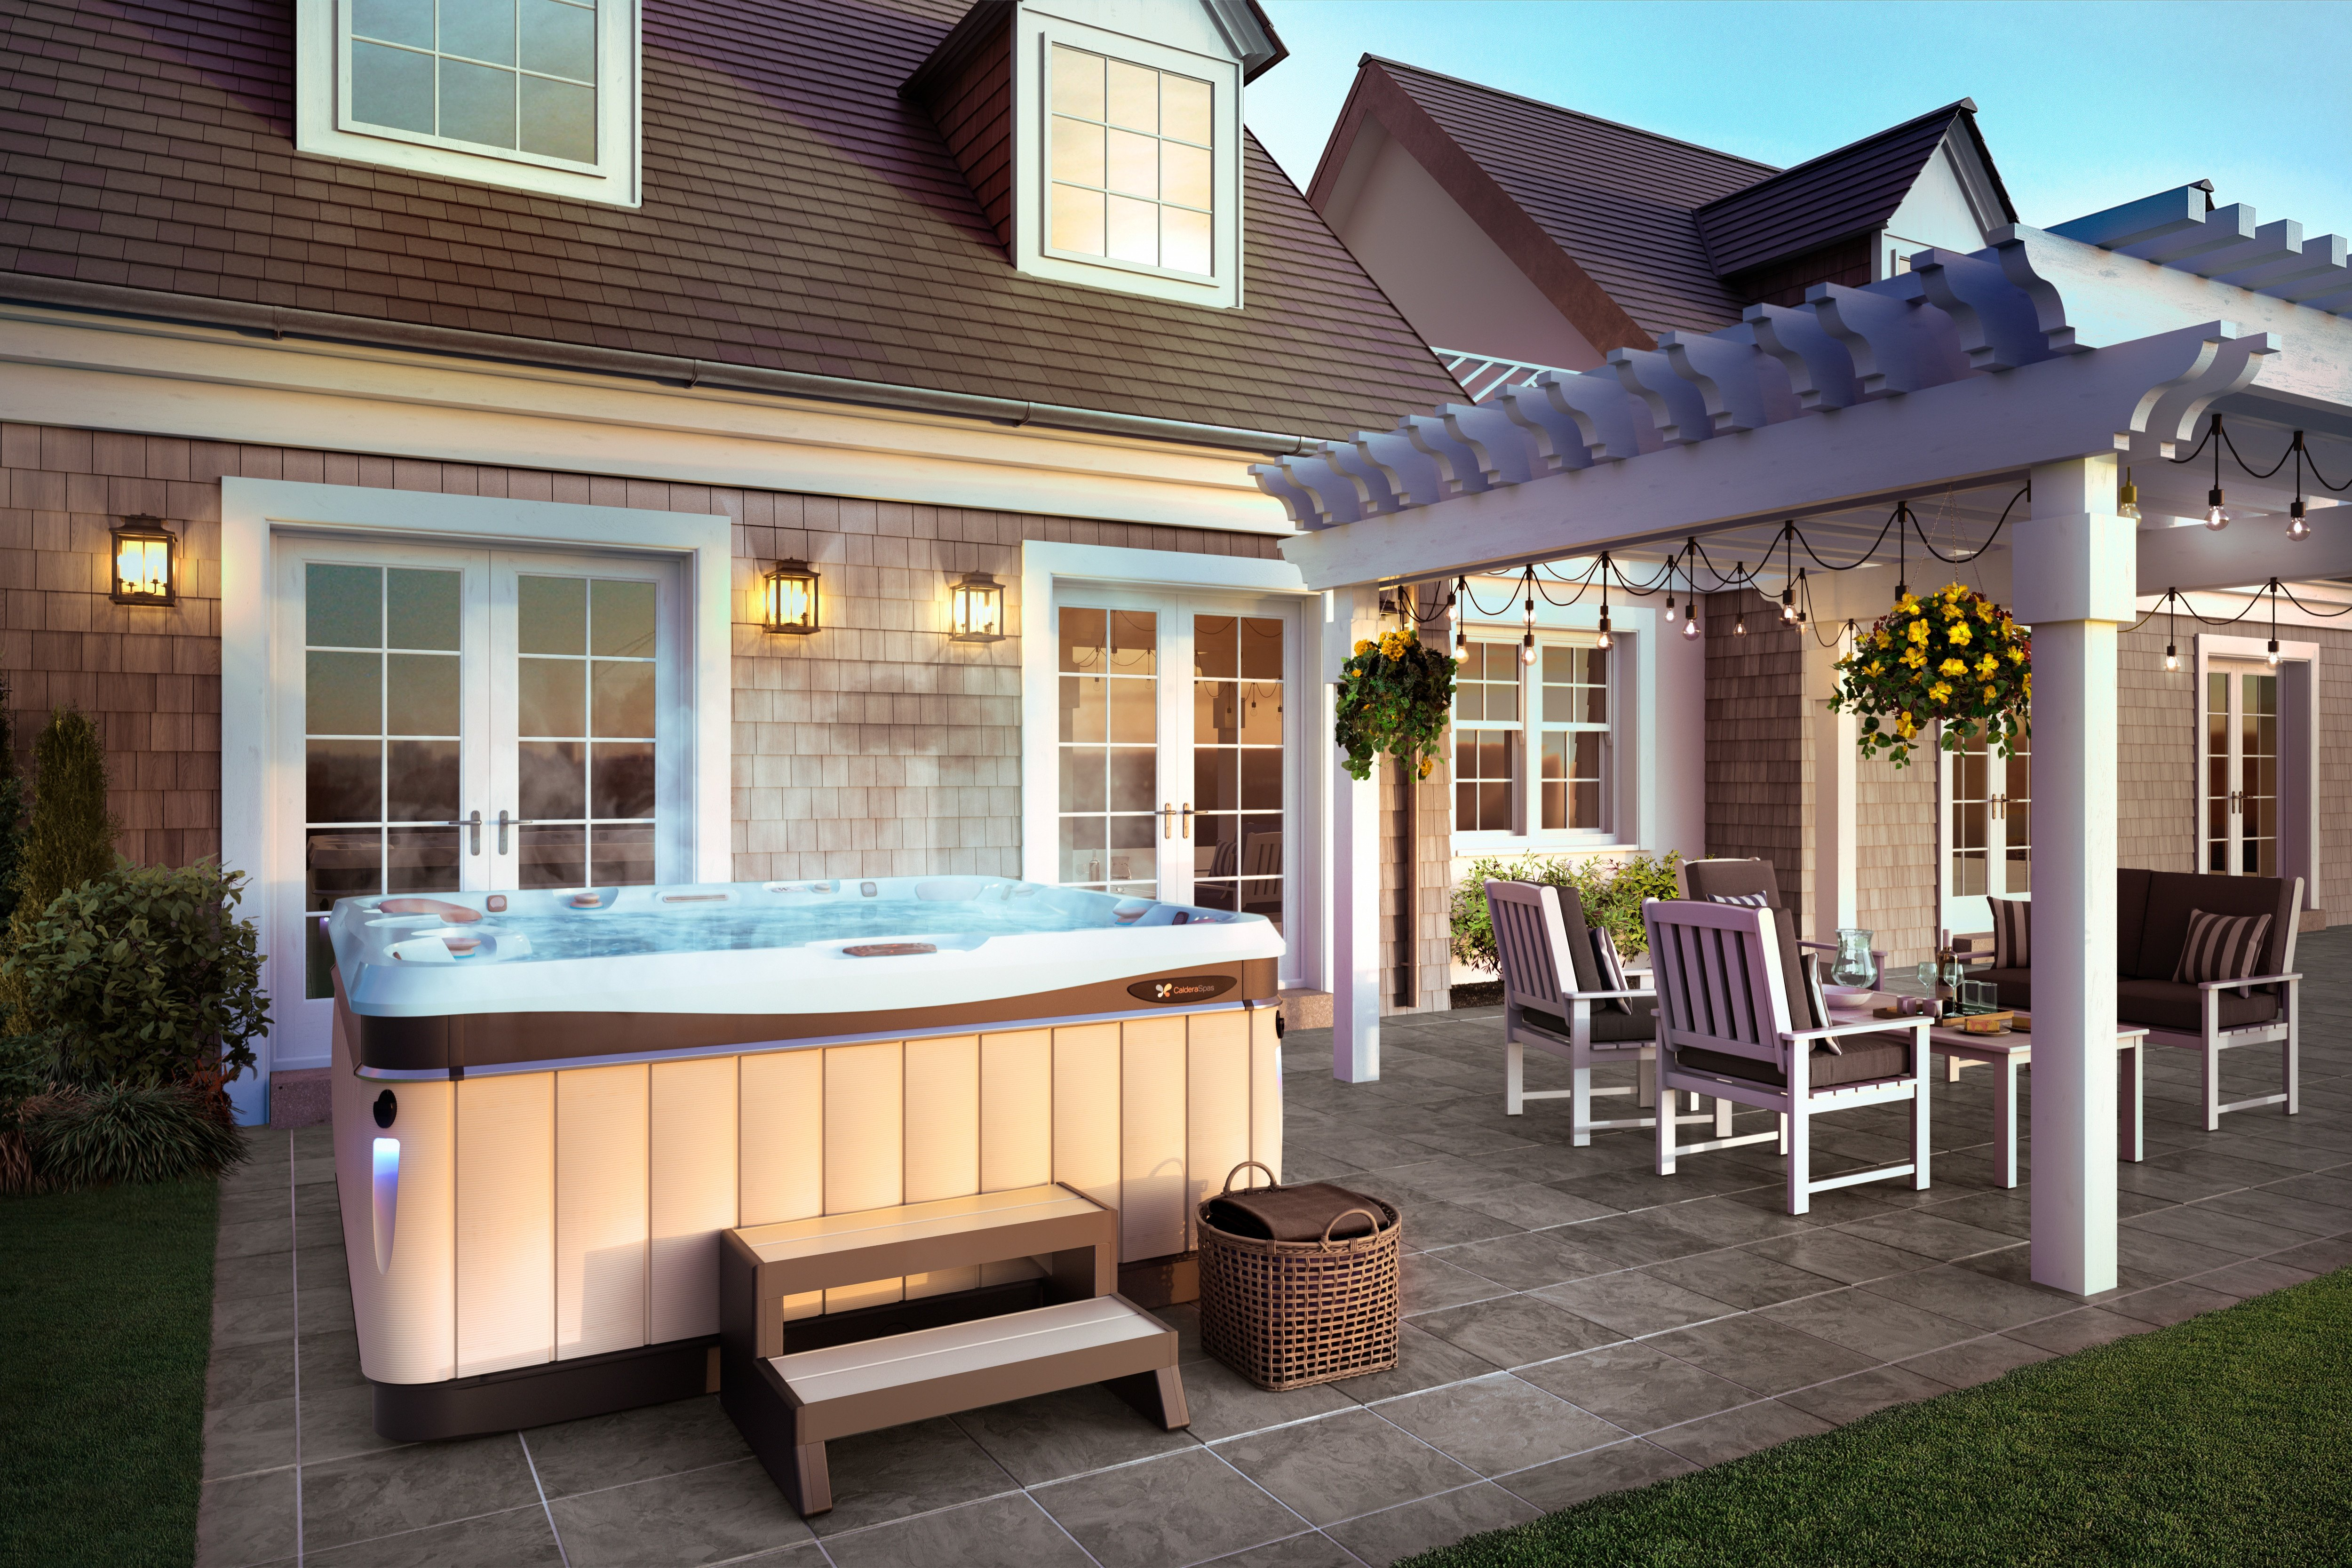 Hot Tub Deals & The Best Time to Buy a Hot Tub